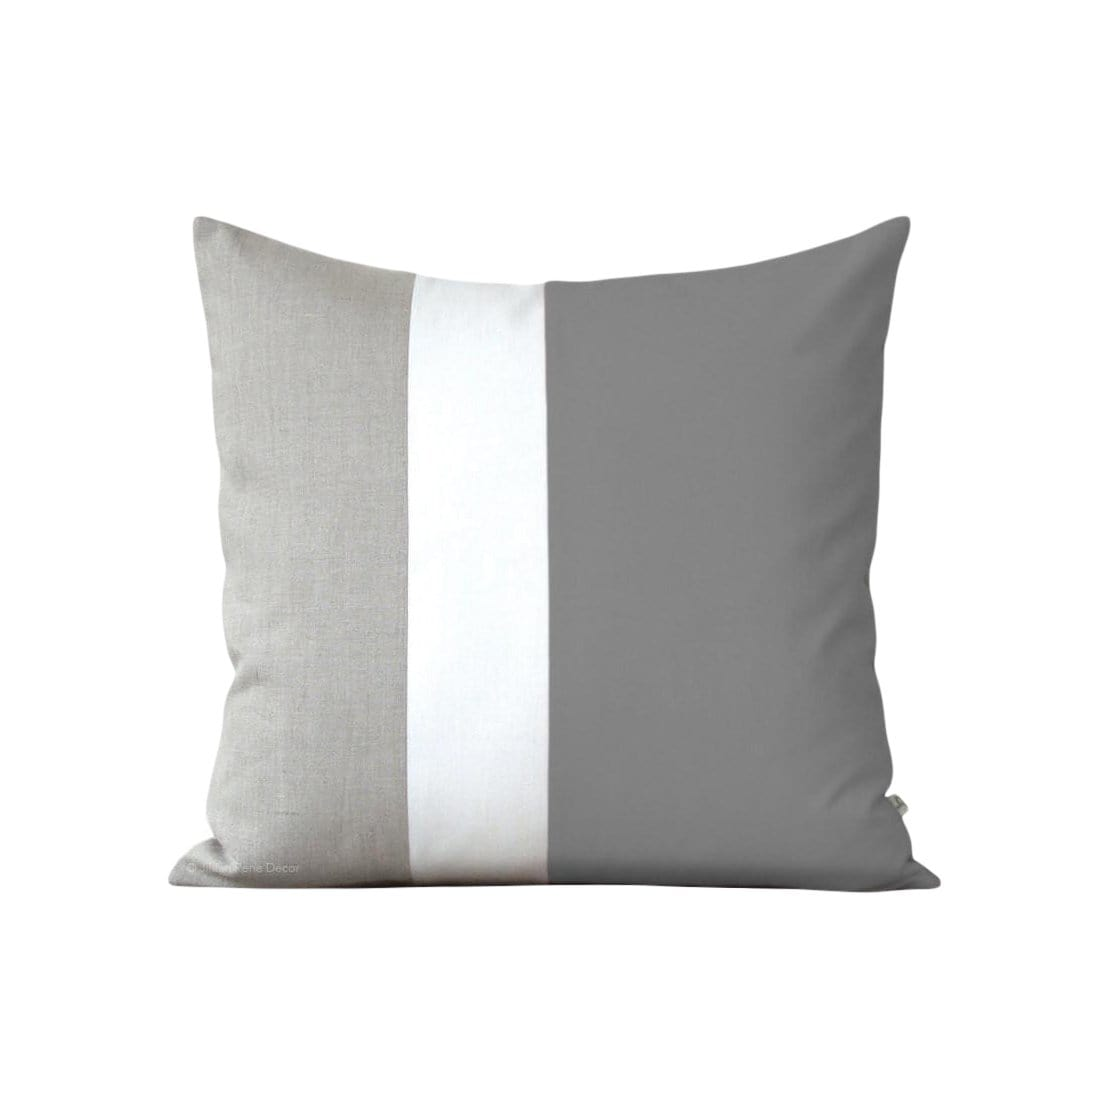 Jillian Rene Decor Cushions + Throws Colorblock Grey, Cream + Natural Pillow